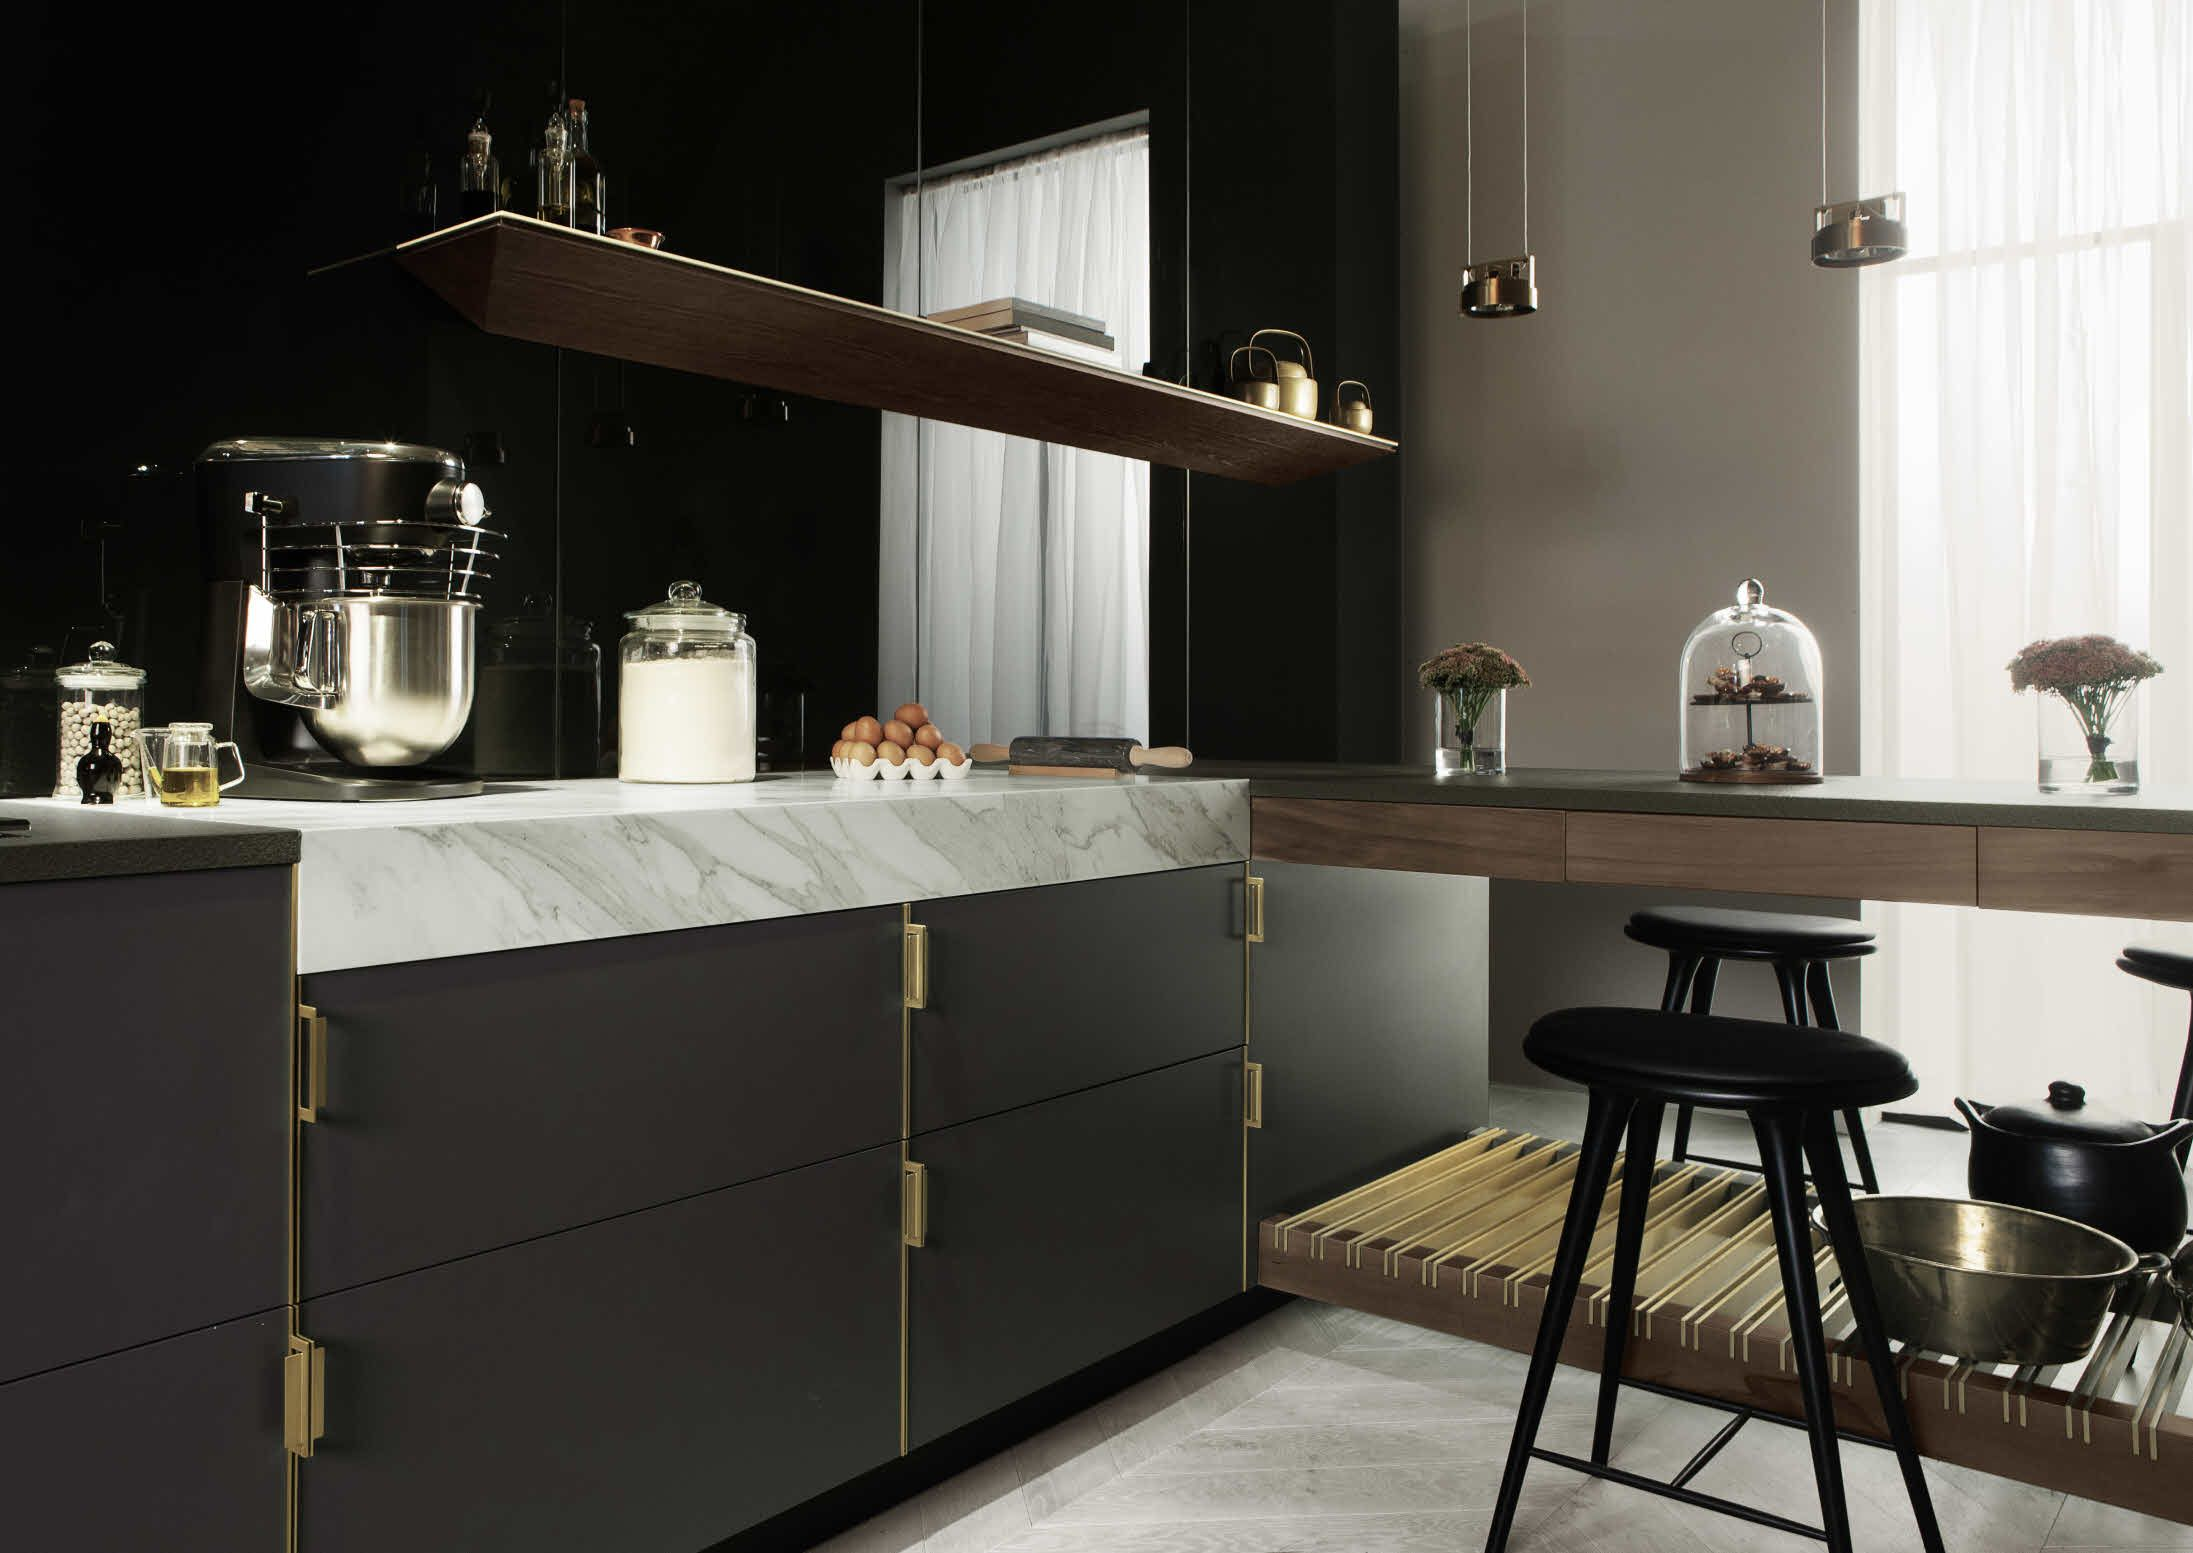 kitchen design concepts Poggenpohl The Fourth Wall Concept